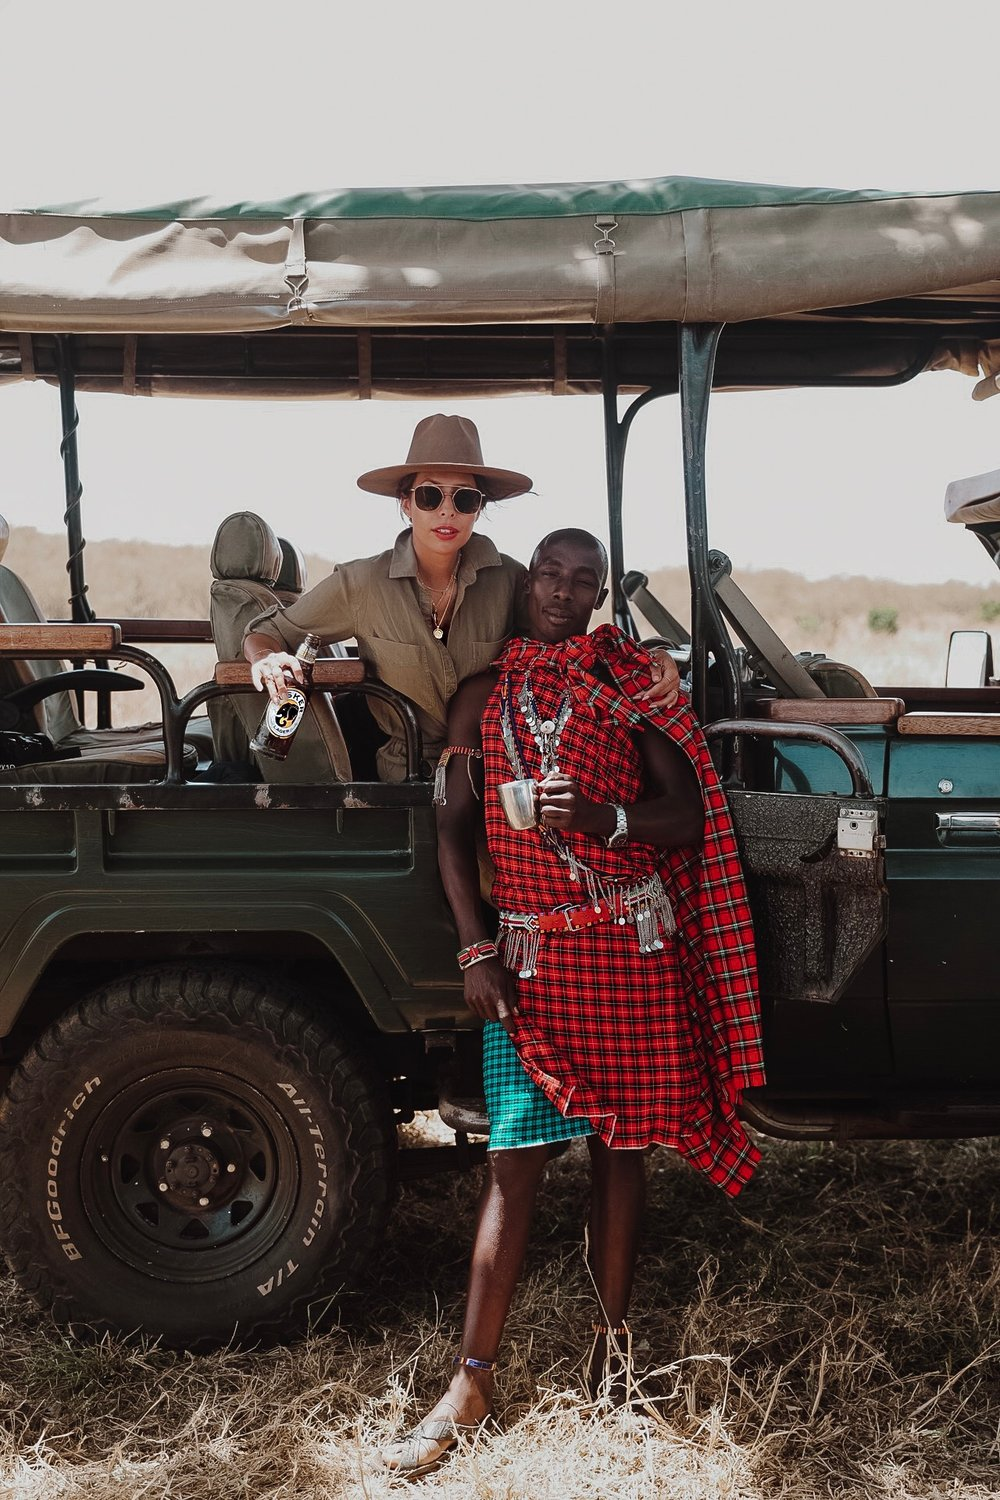 Maasai Warrior on Safari in Kenya, Africa Ph. Valorie Darling